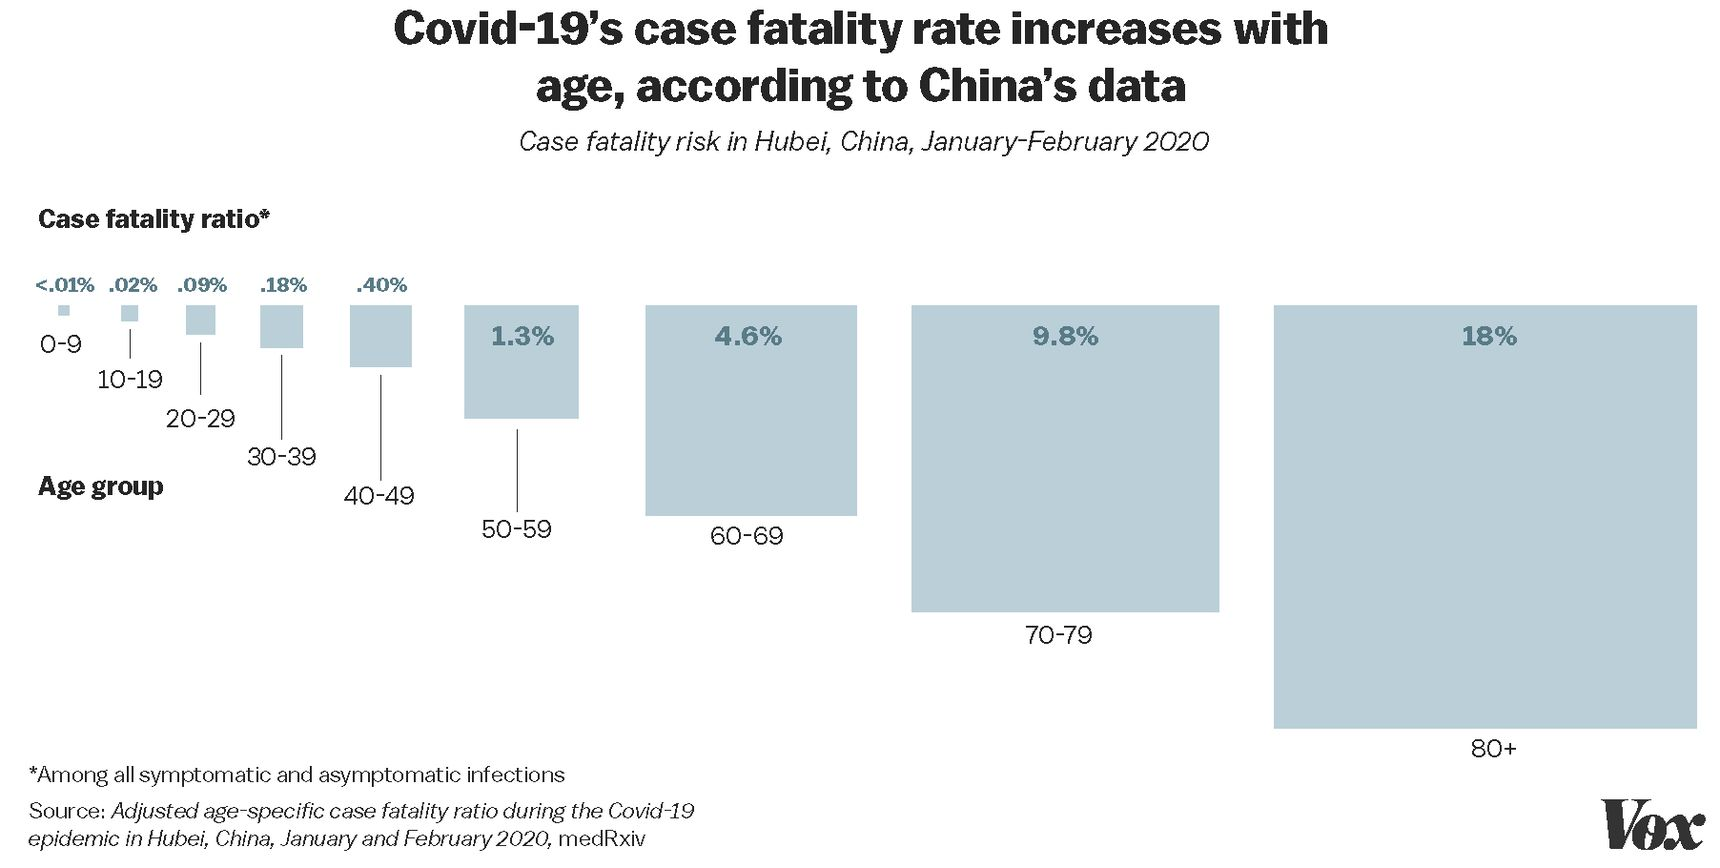 Covid-19 Mortality or Fatality Rate